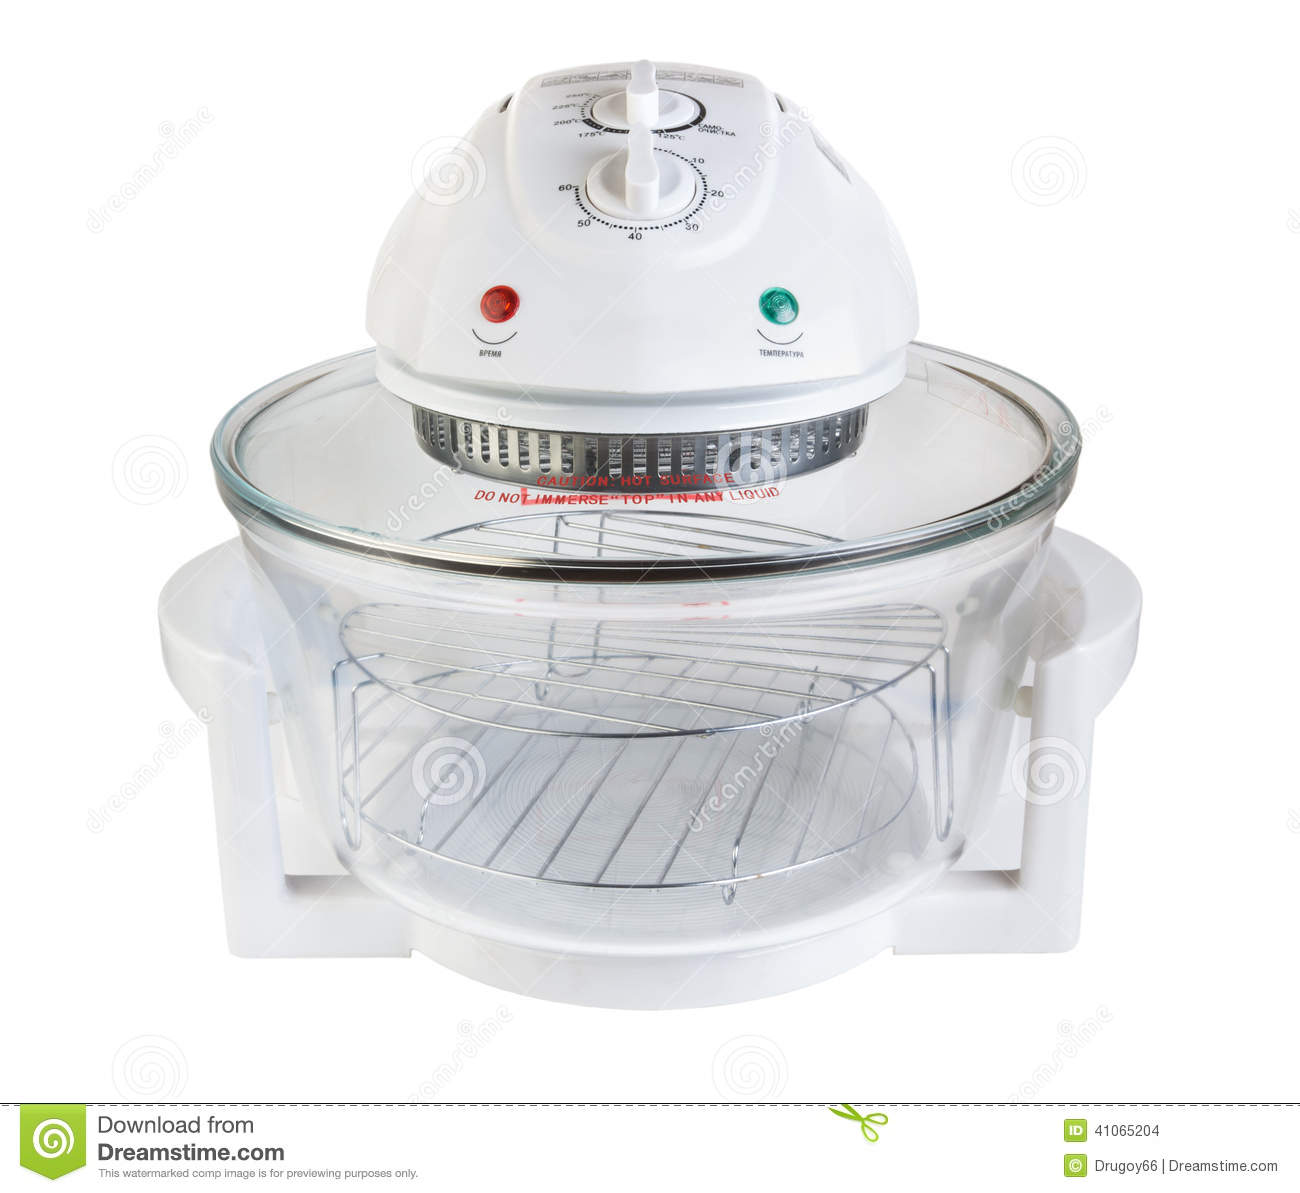 Electric Kitchen Appliance ~ Electric kitchen appliance aerogrill stock photo image